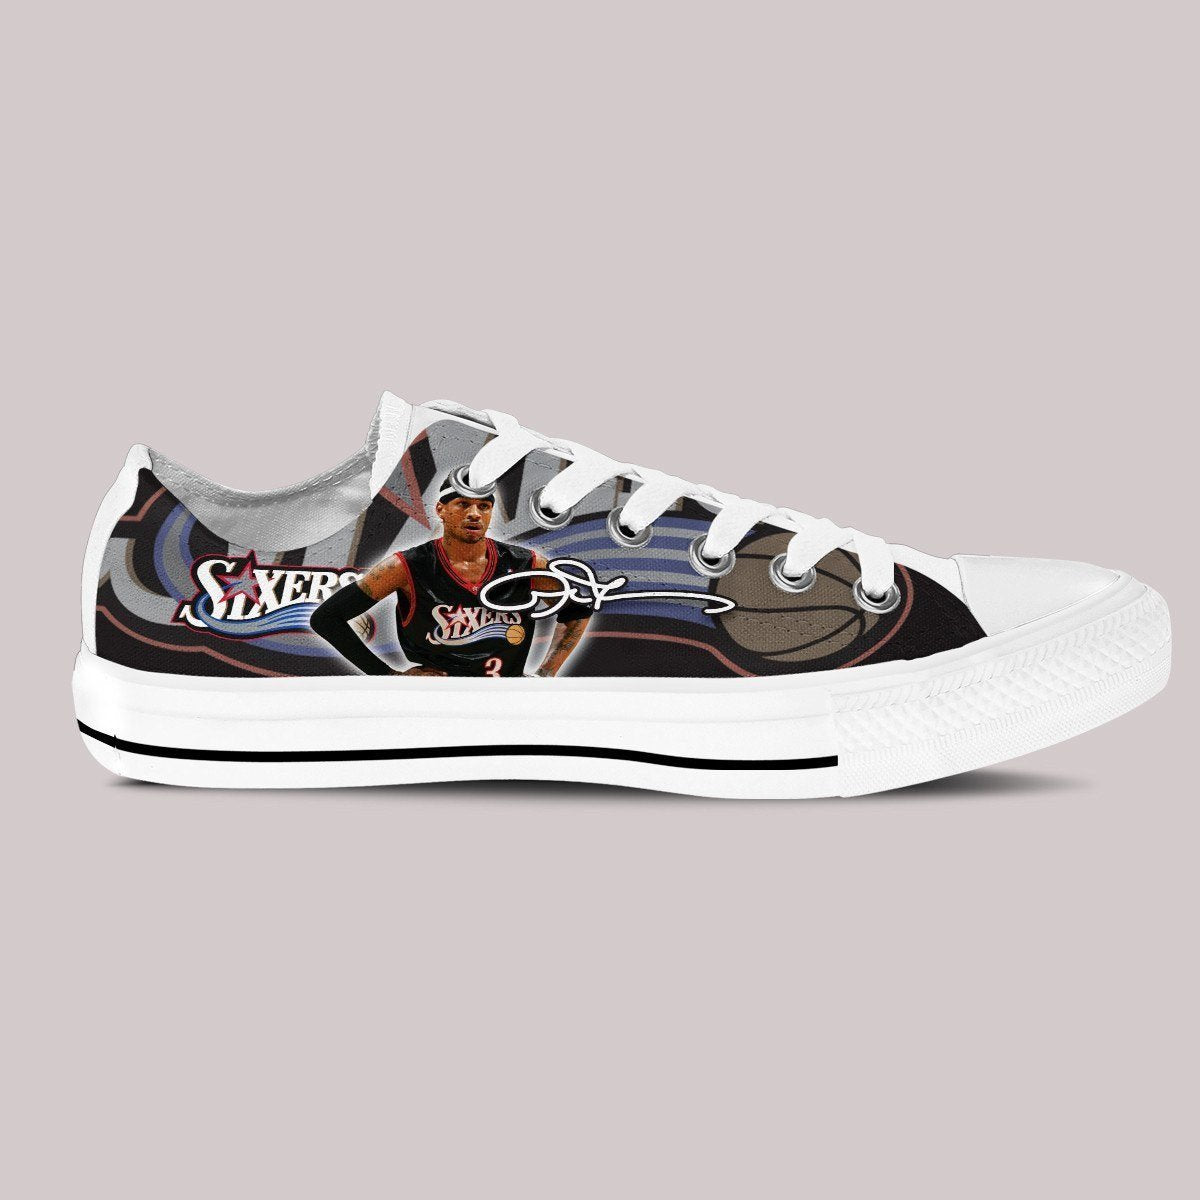 allen iverson ladies low cut sneakers